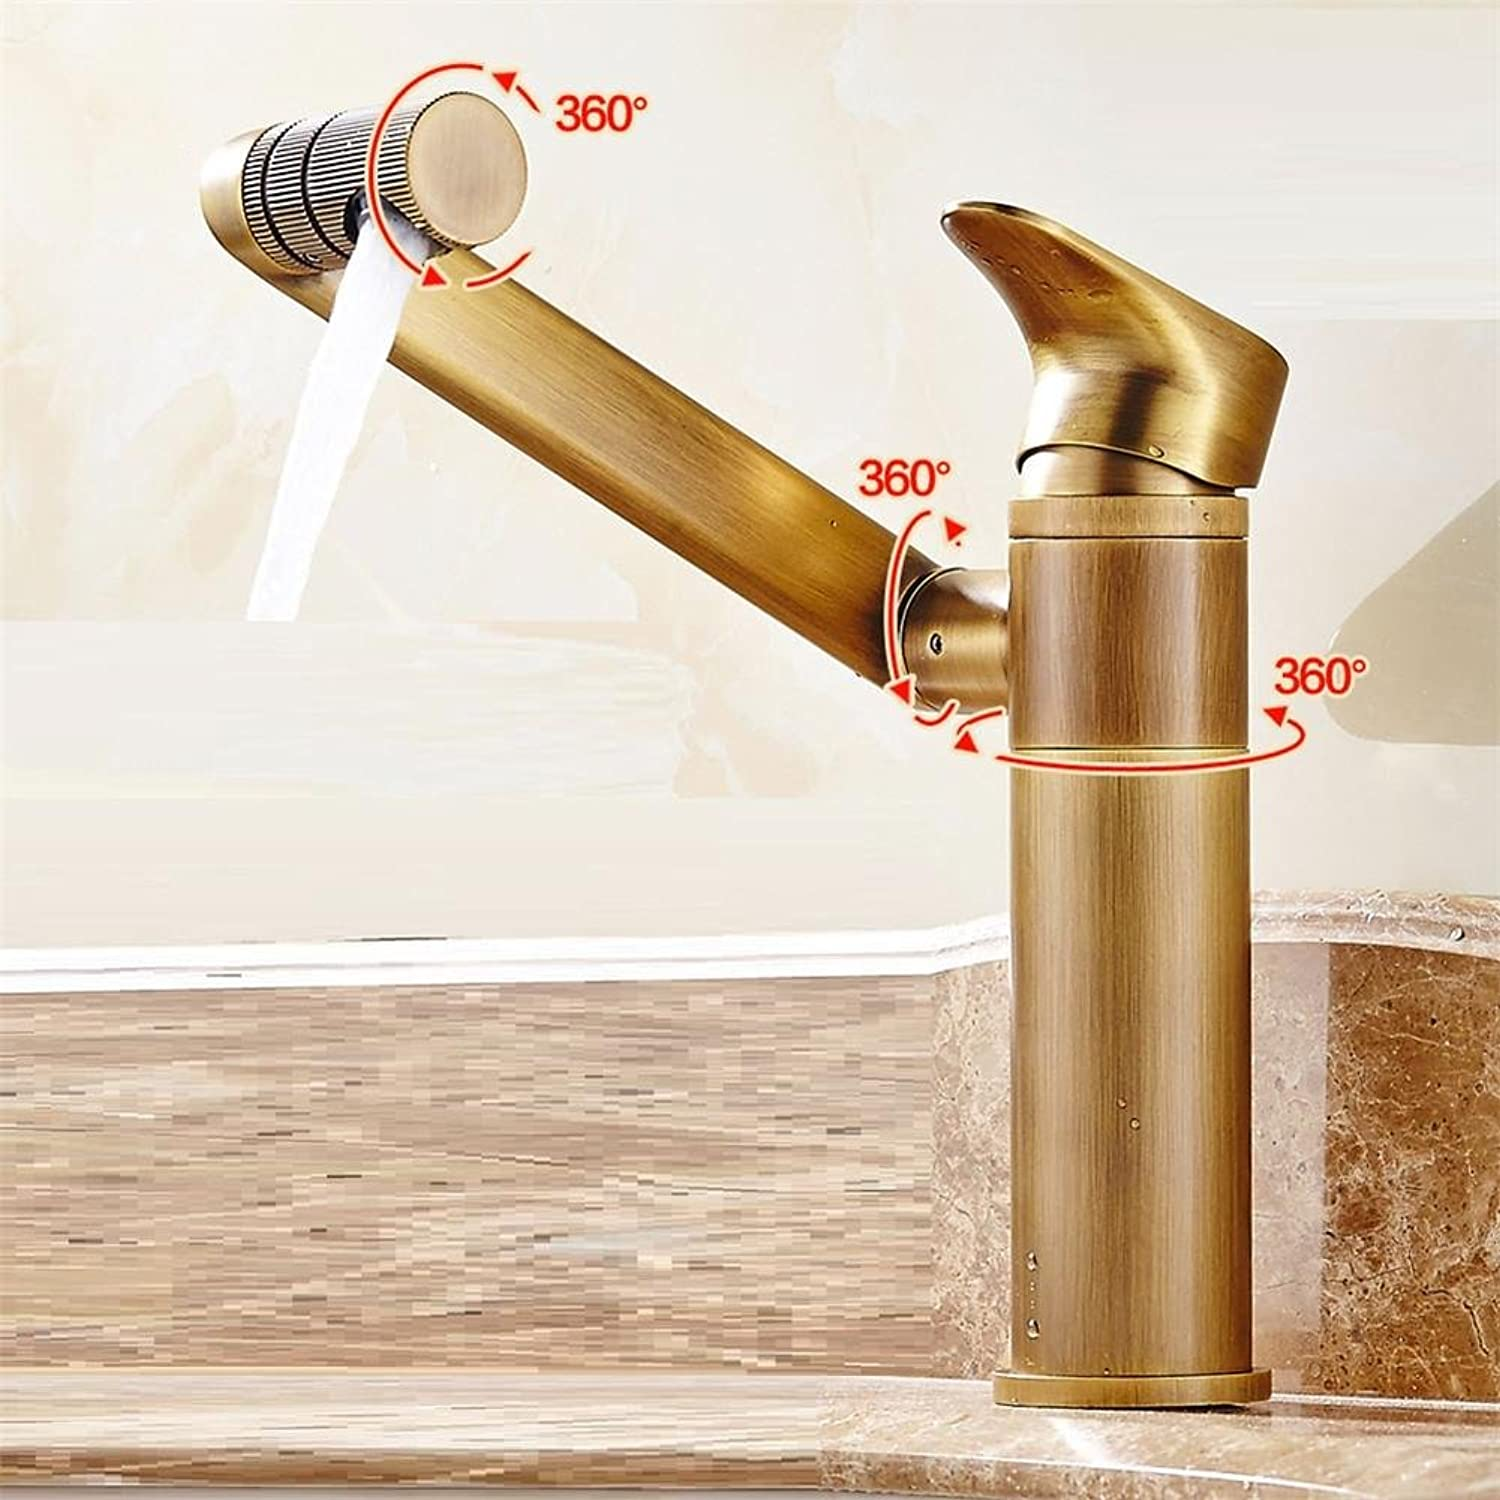 HomJo Bathroom Faucet Chrome Brass Ceramic Single Handle white redary Mixer Tap , 2